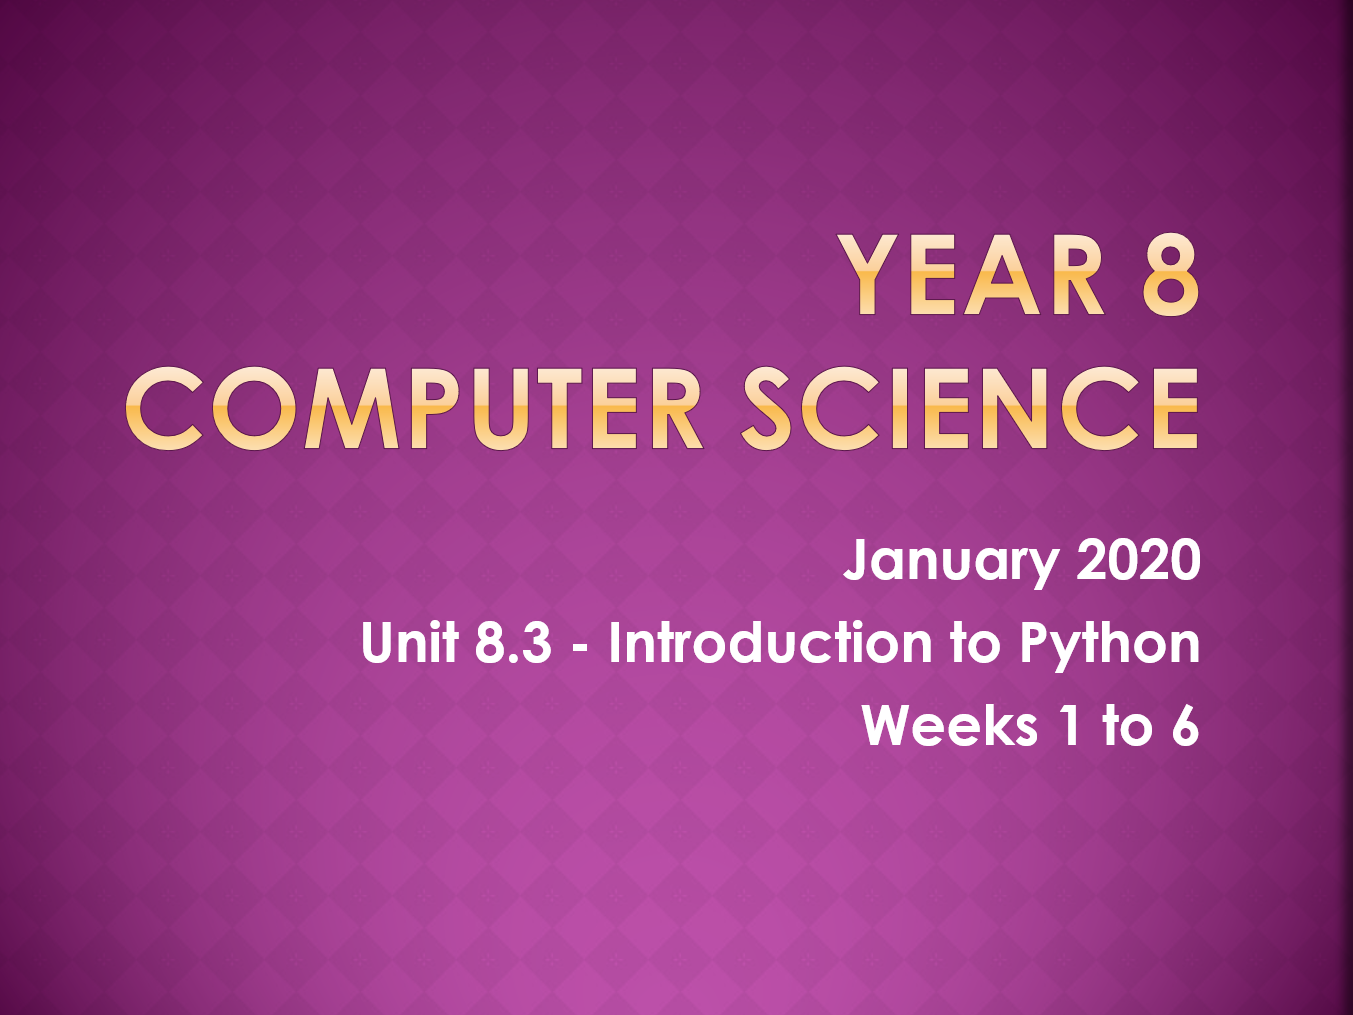 Complete Computer Science KS3 SOW: Programming in Python